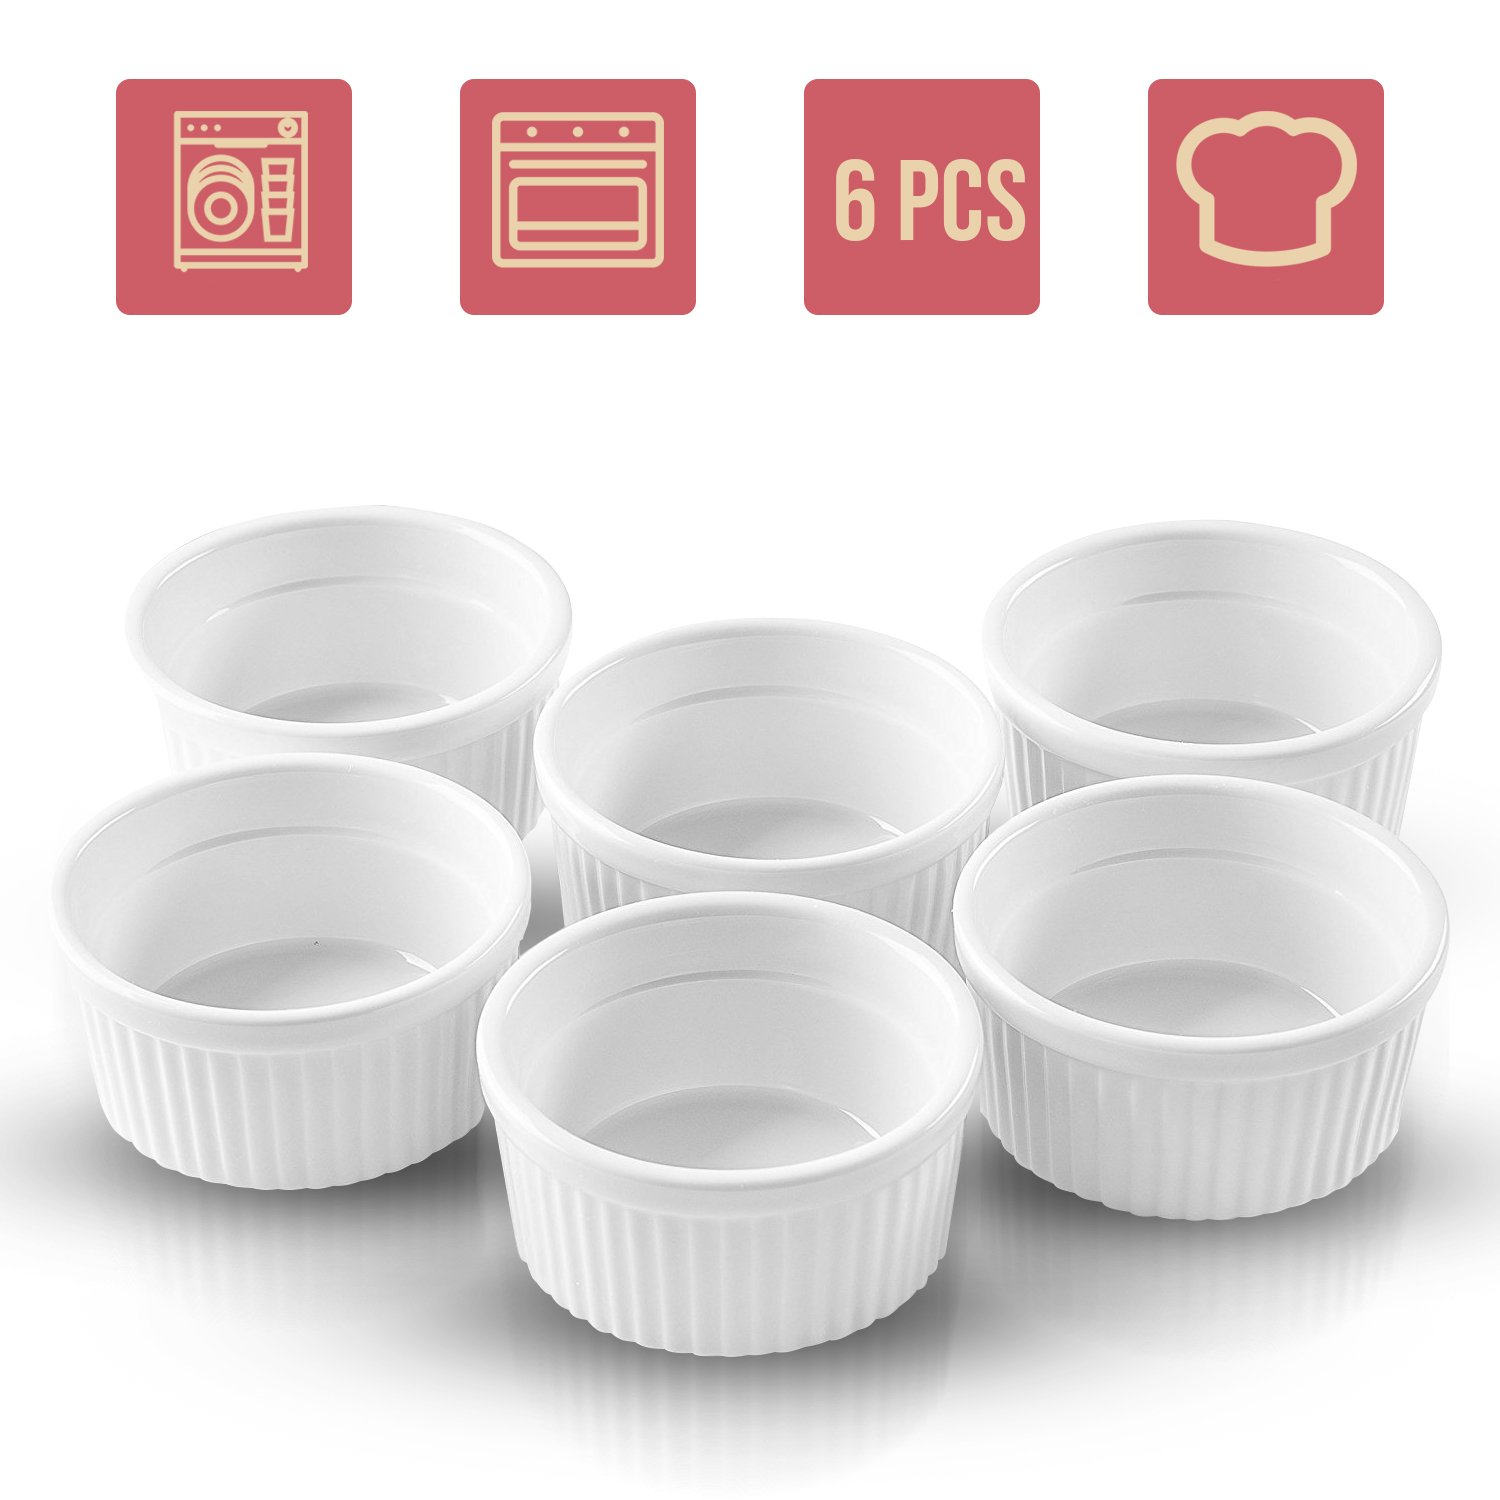 Ramekins for Baking as Creme Brulee Dishes - 4 oz Small Bowls Perfect as Baking, Pudding, Sauce, Souffle, Dipping, Custard Cups Dish and Flan Mold, Small Bowls, Dessert Cups, Ramekin Set of 6 Pieces